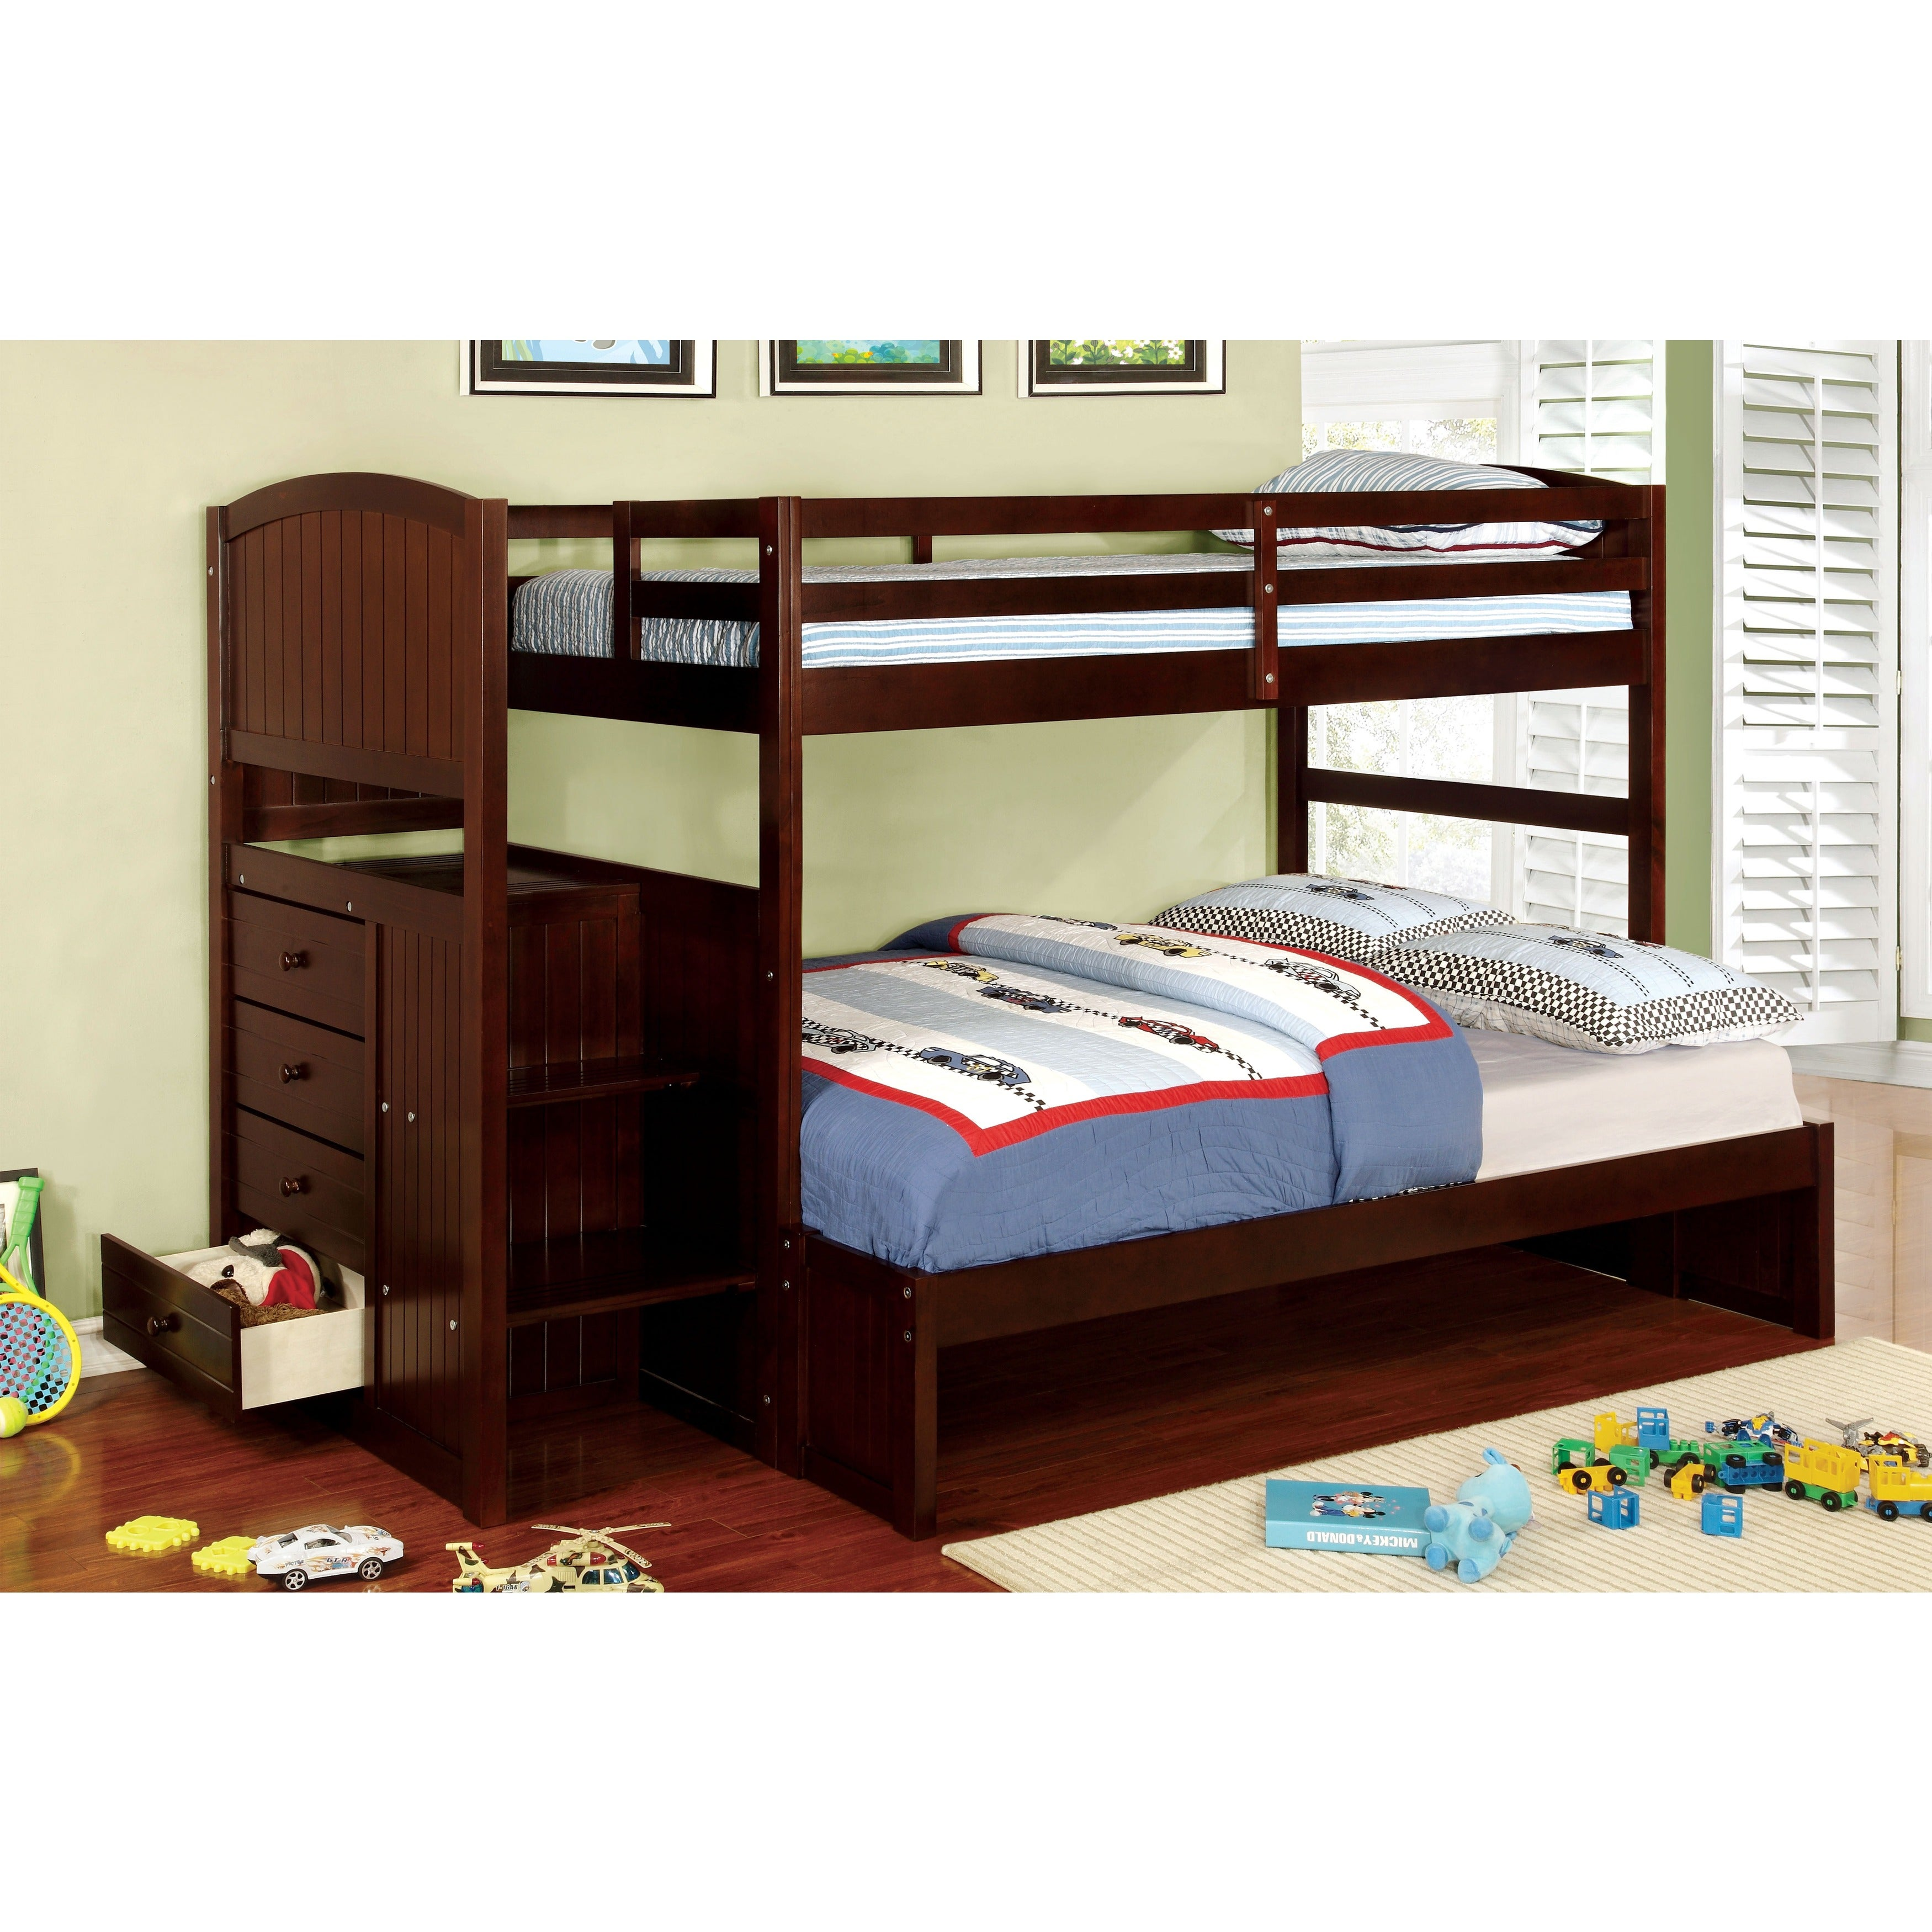 Furniture of America Redenell White/Expresso Bunk Bed wit...